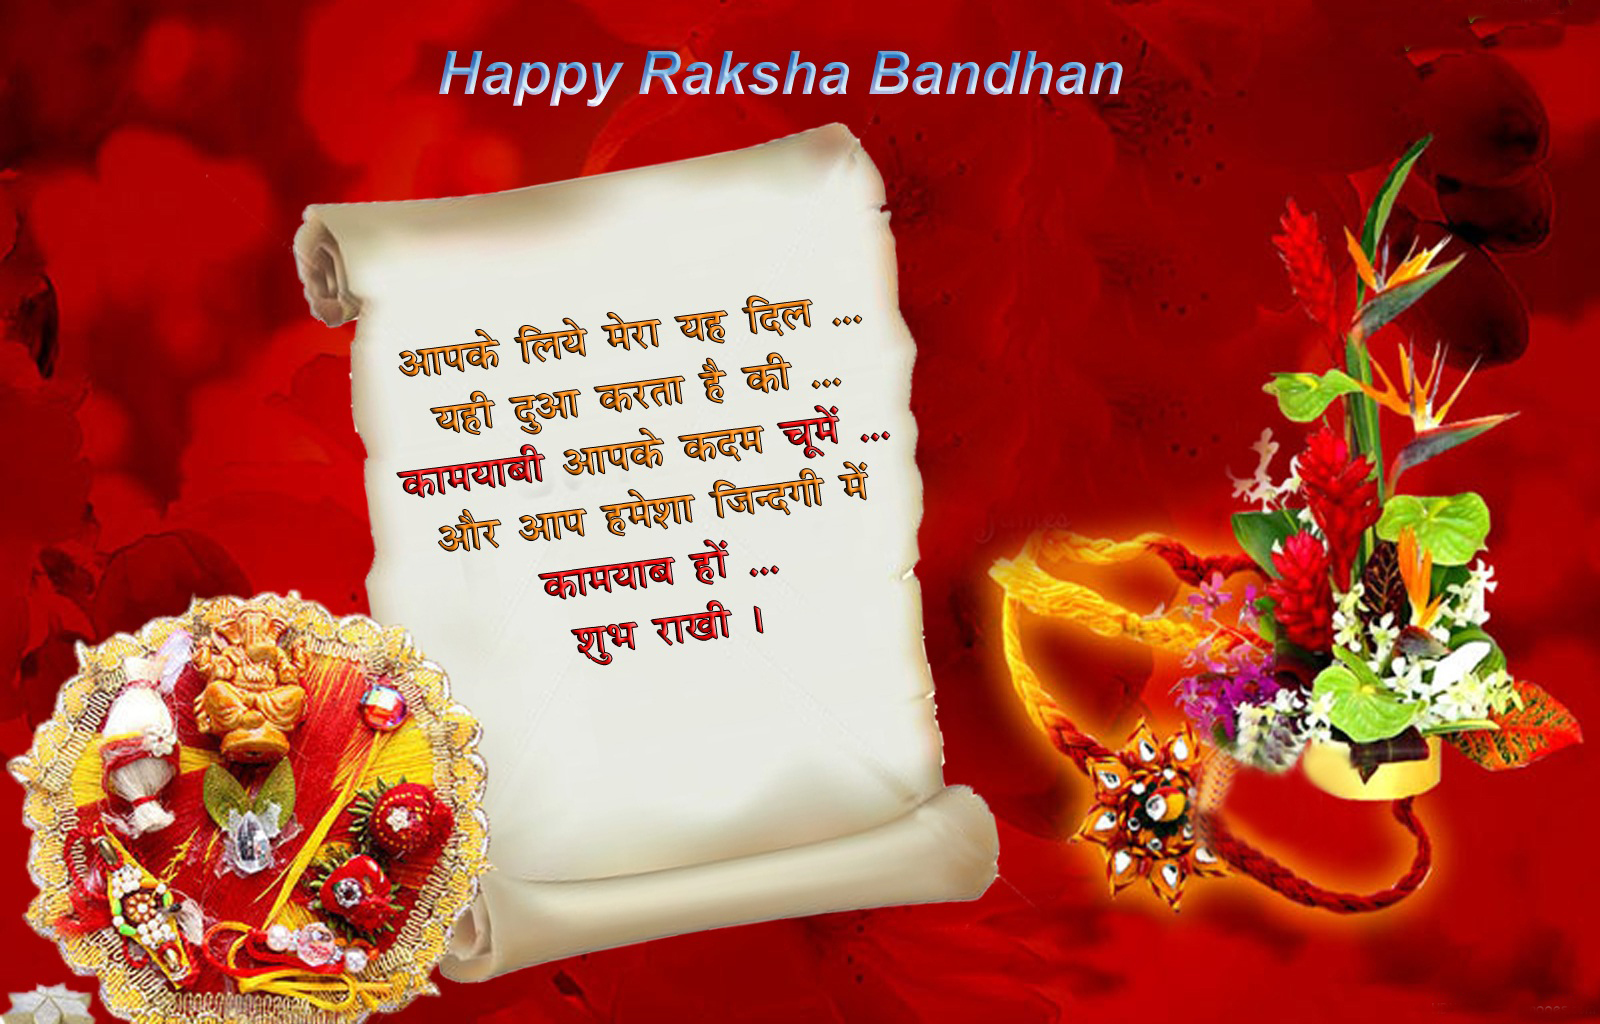 Happy Raksha Bandhan 2017 – Wishes, Messages, and Quotes